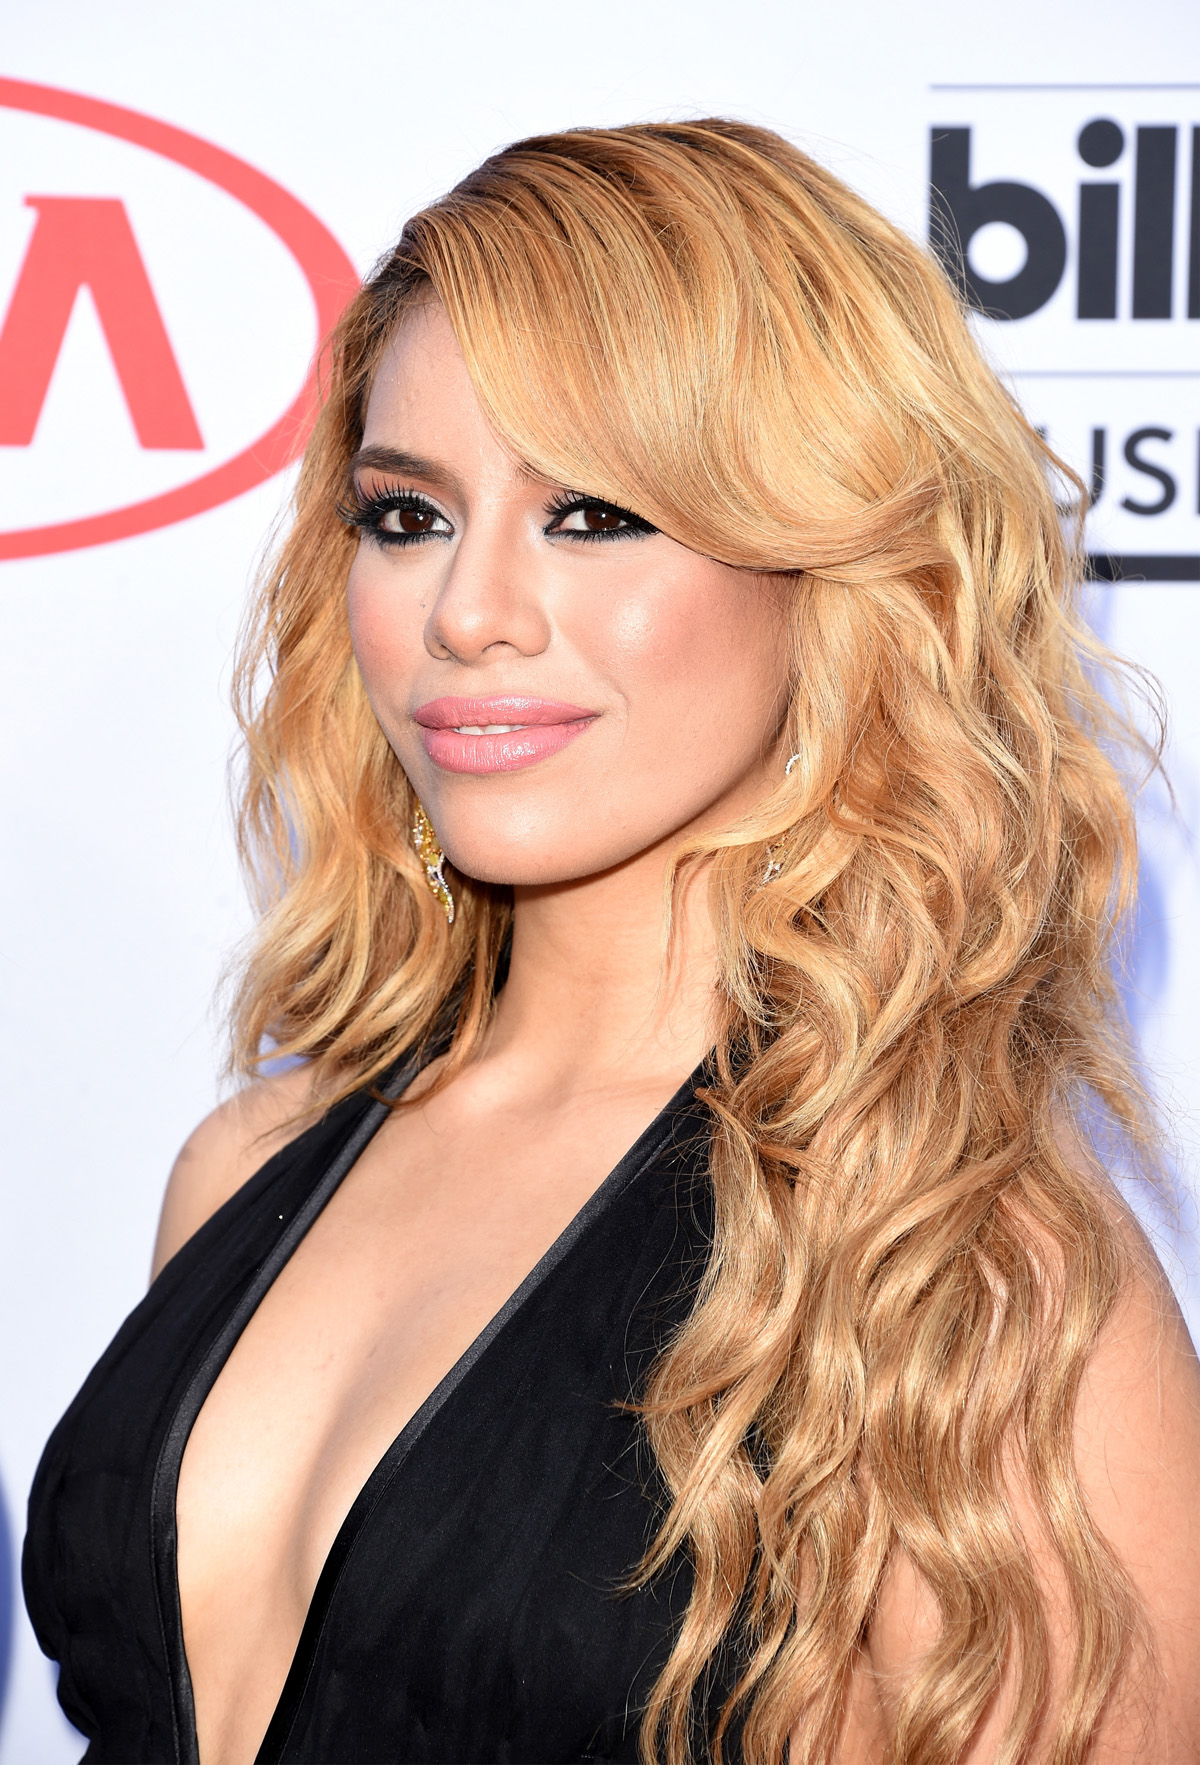 Dinah-Jane Hansen earned a  million dollar salary, leaving the net worth at 3.5 million in 2017